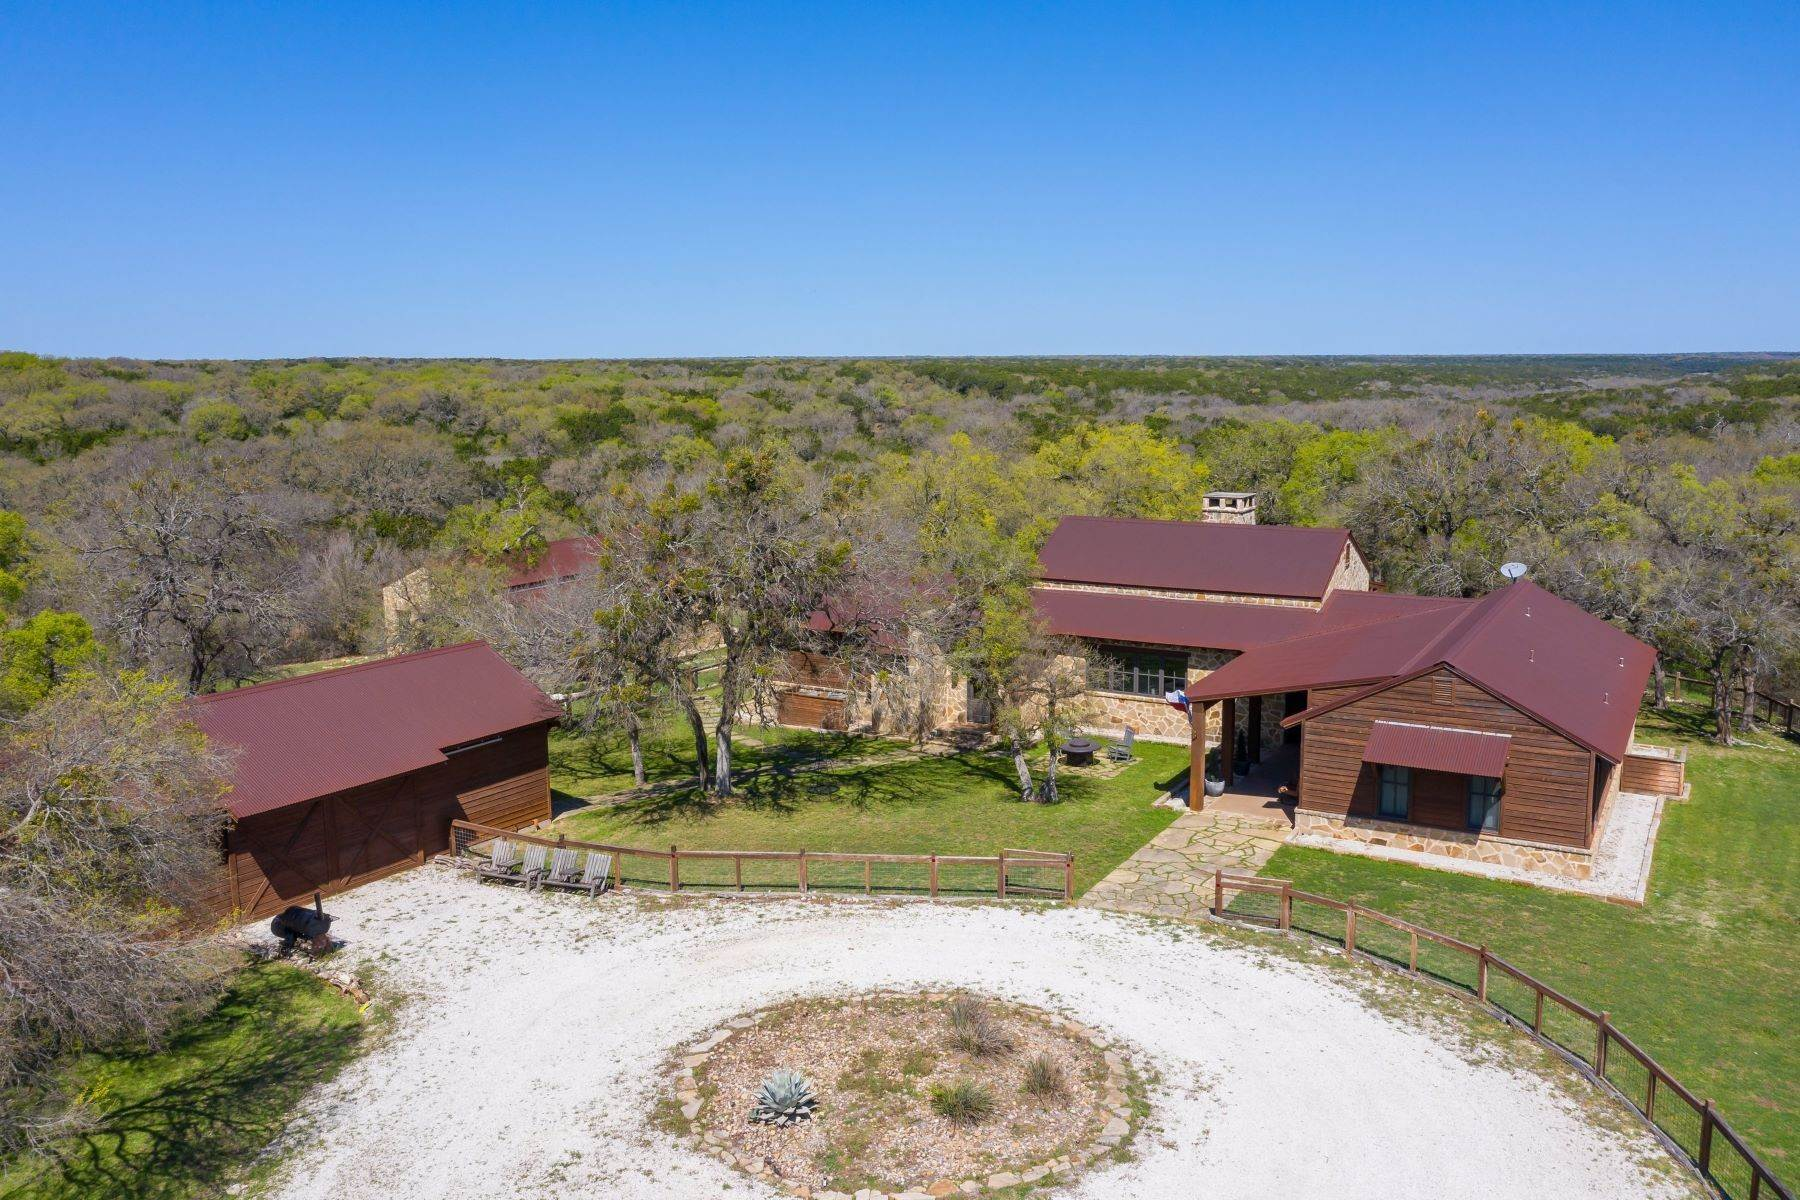 Farm and Ranch Properties for Sale at 118 PR 1077, Clifton, TX, 76634 118 PR 1077 Clifton, Texas 76634 United States